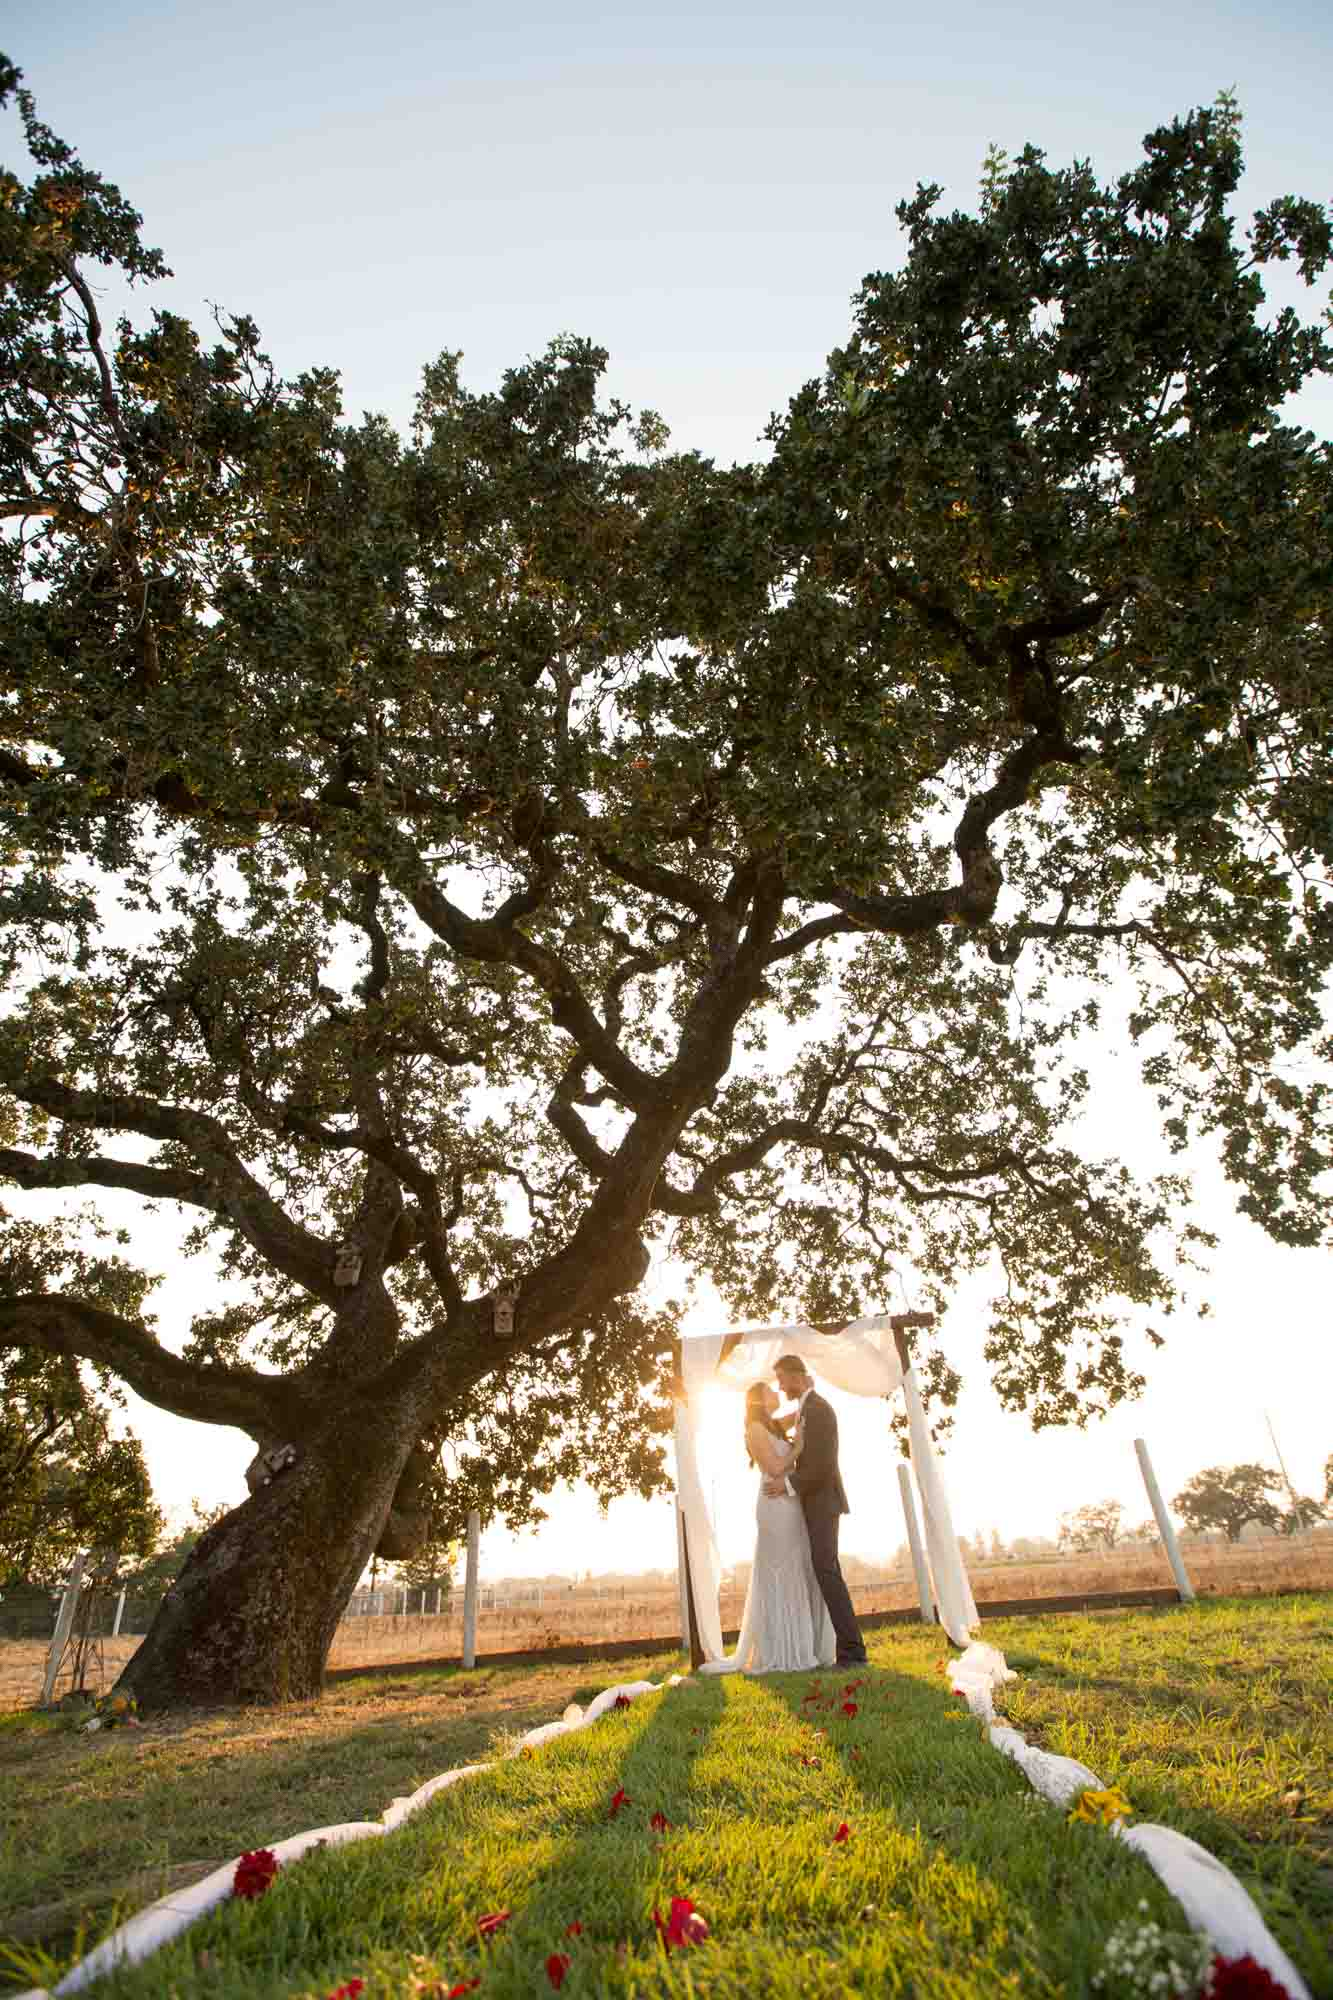 couple embracing under an alter and framed by an oak tree